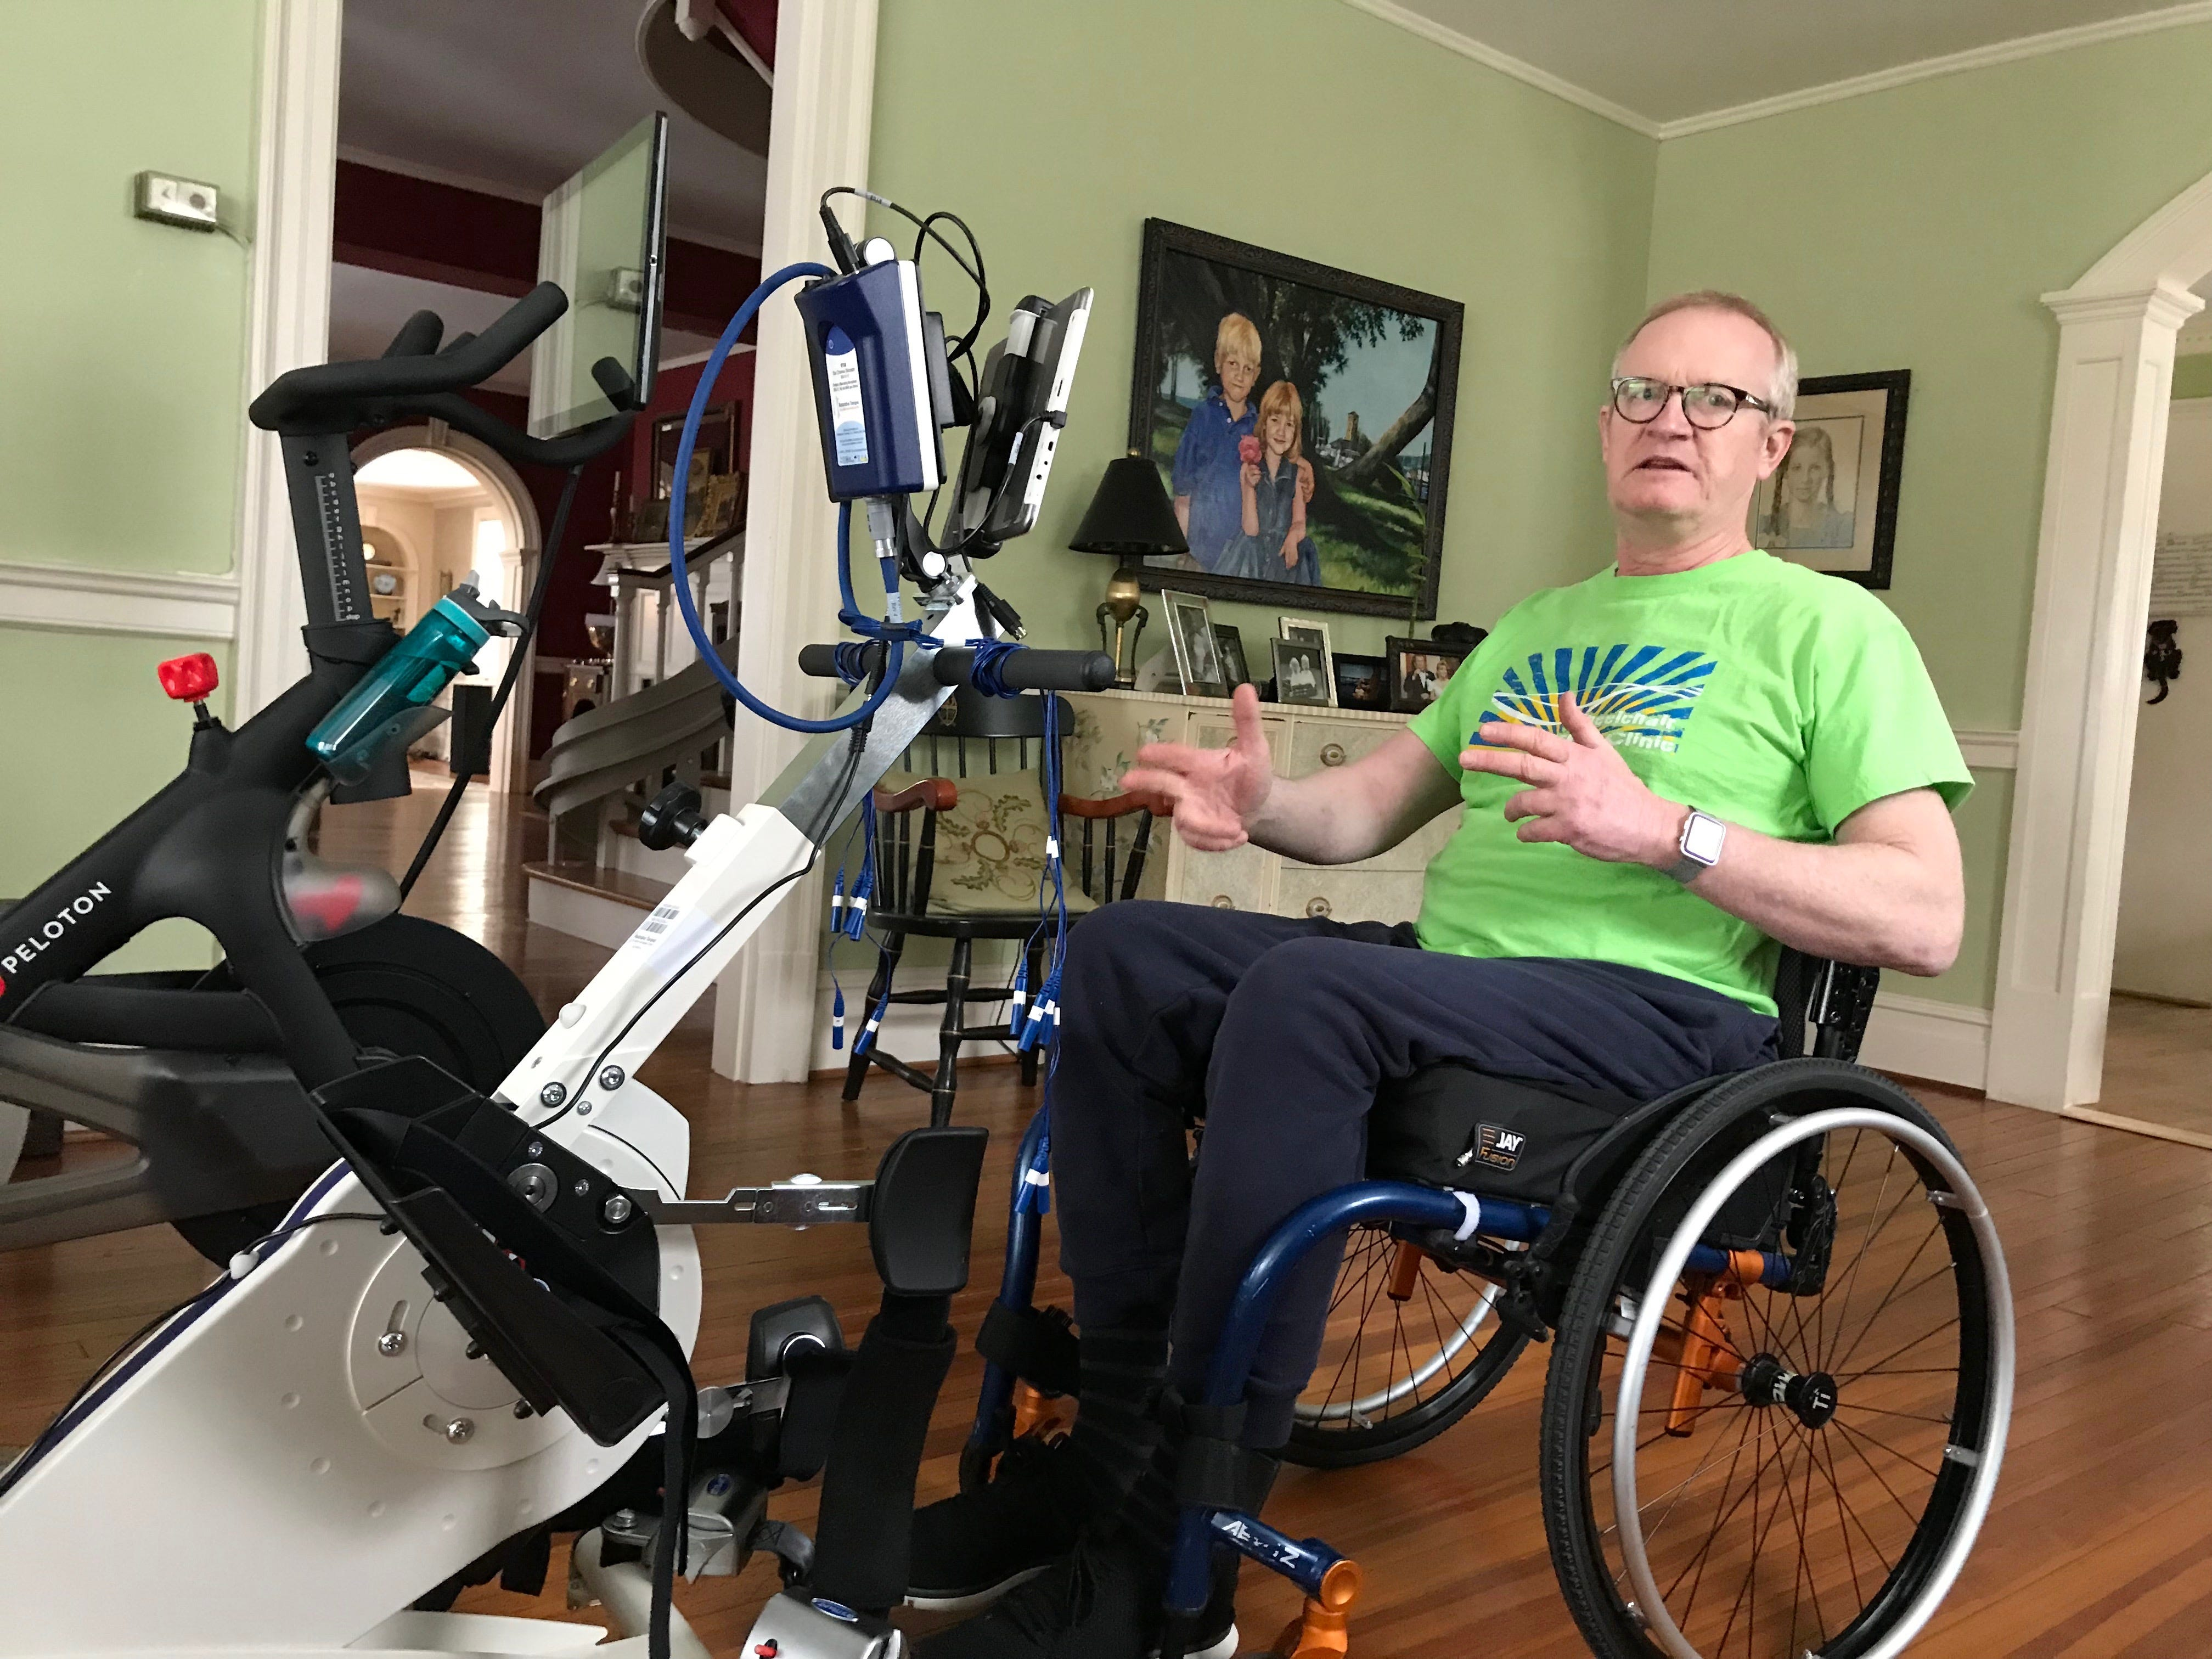 Dr. Robert Kyler uses an electrical stimulation bike (e-stim bike) to improve circulation and reduce muscle atrophy in his legs. Photographed in his home in Staunton, Virginia, on Friday, March 8, 2019.